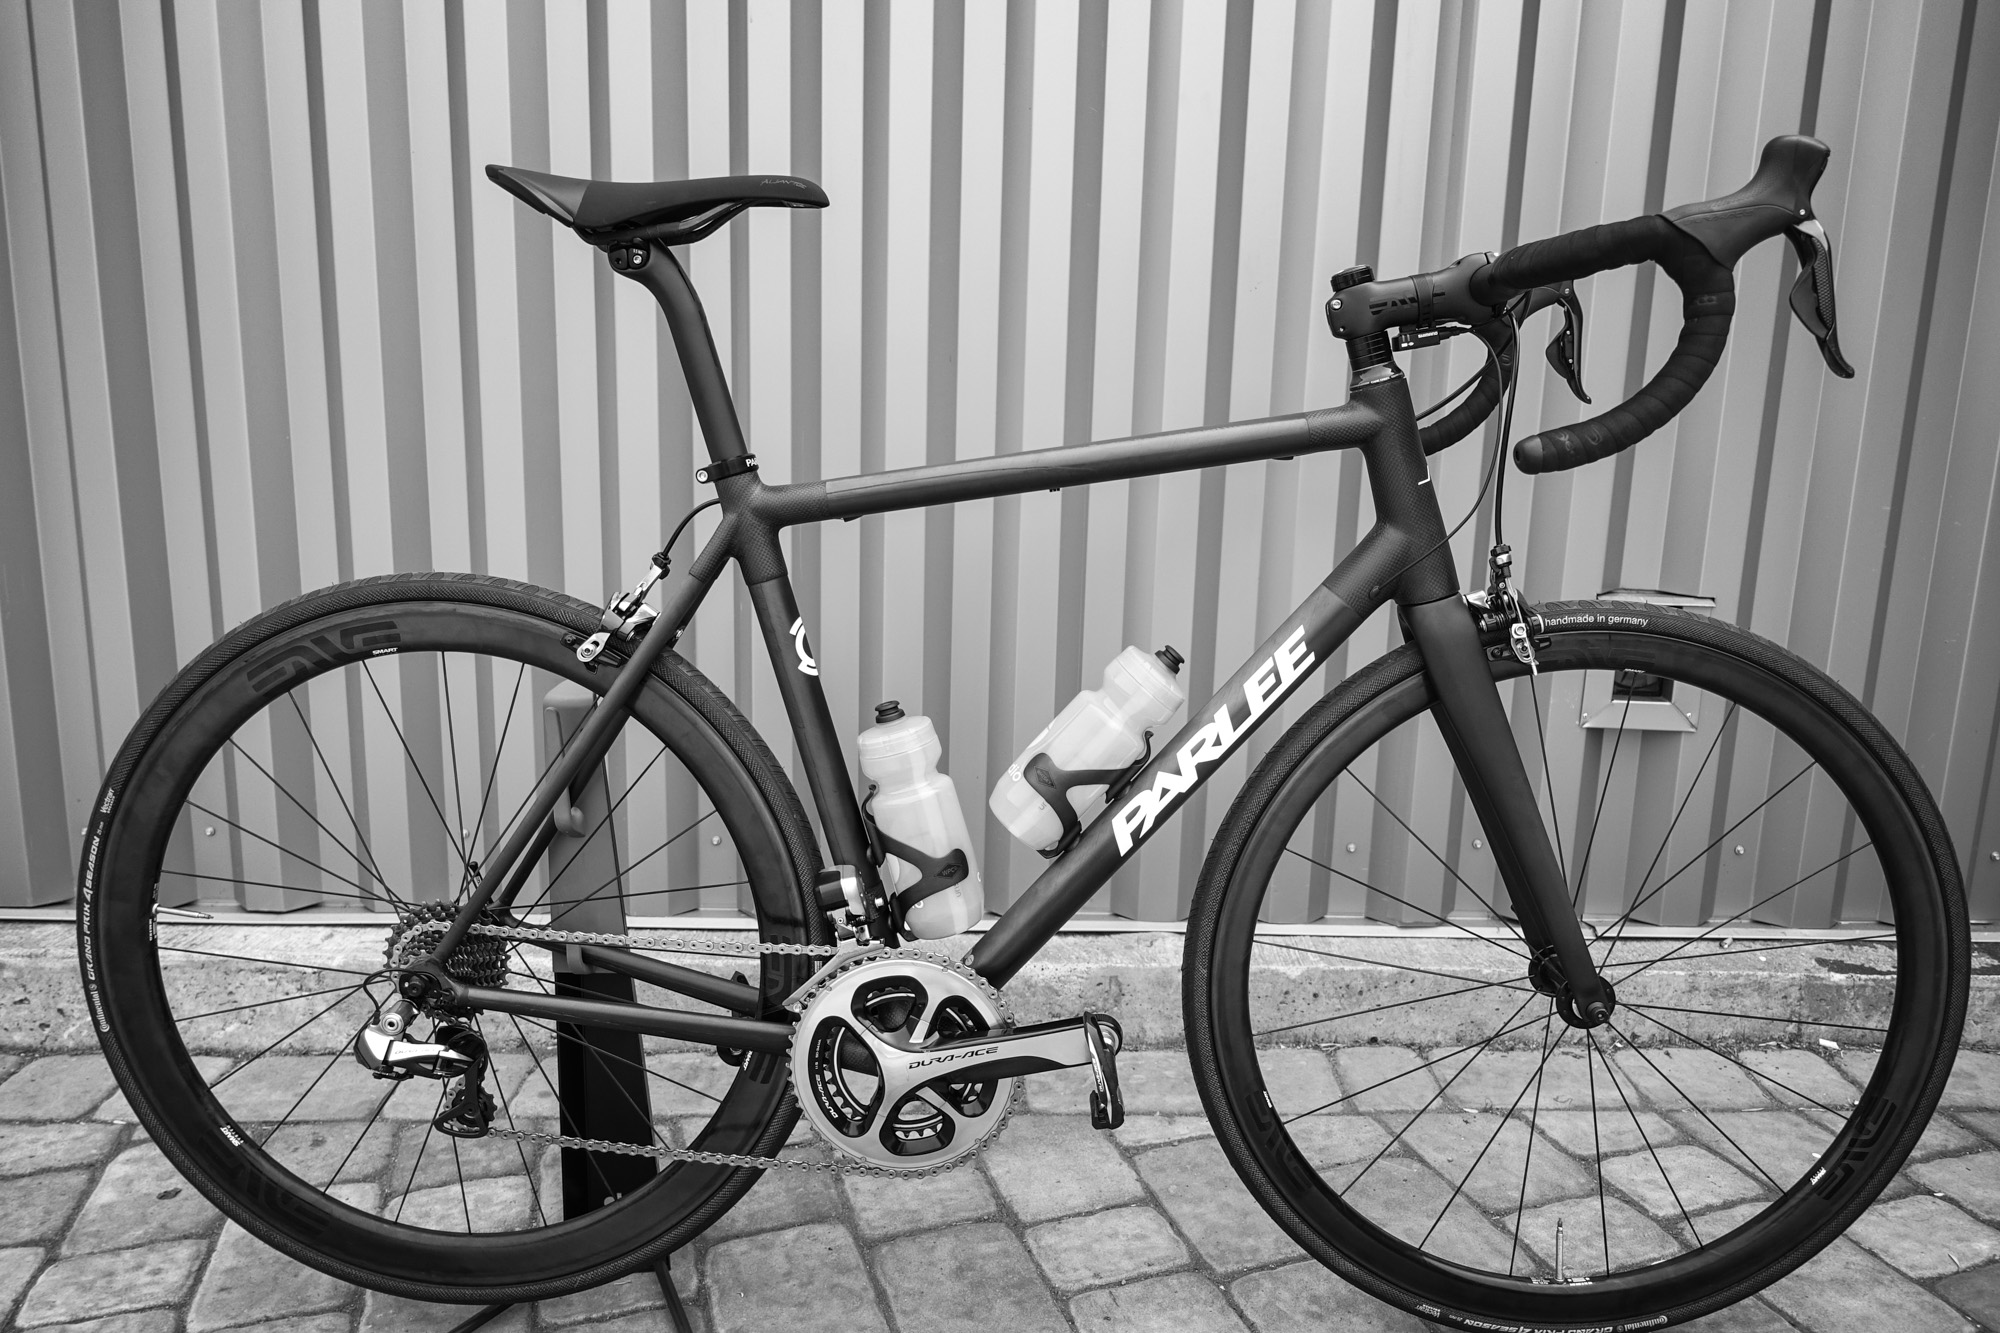 af986c158ce We feel strongly about our custom bicycle process and believe we absolutely  add value from start to finish on the creation of ...